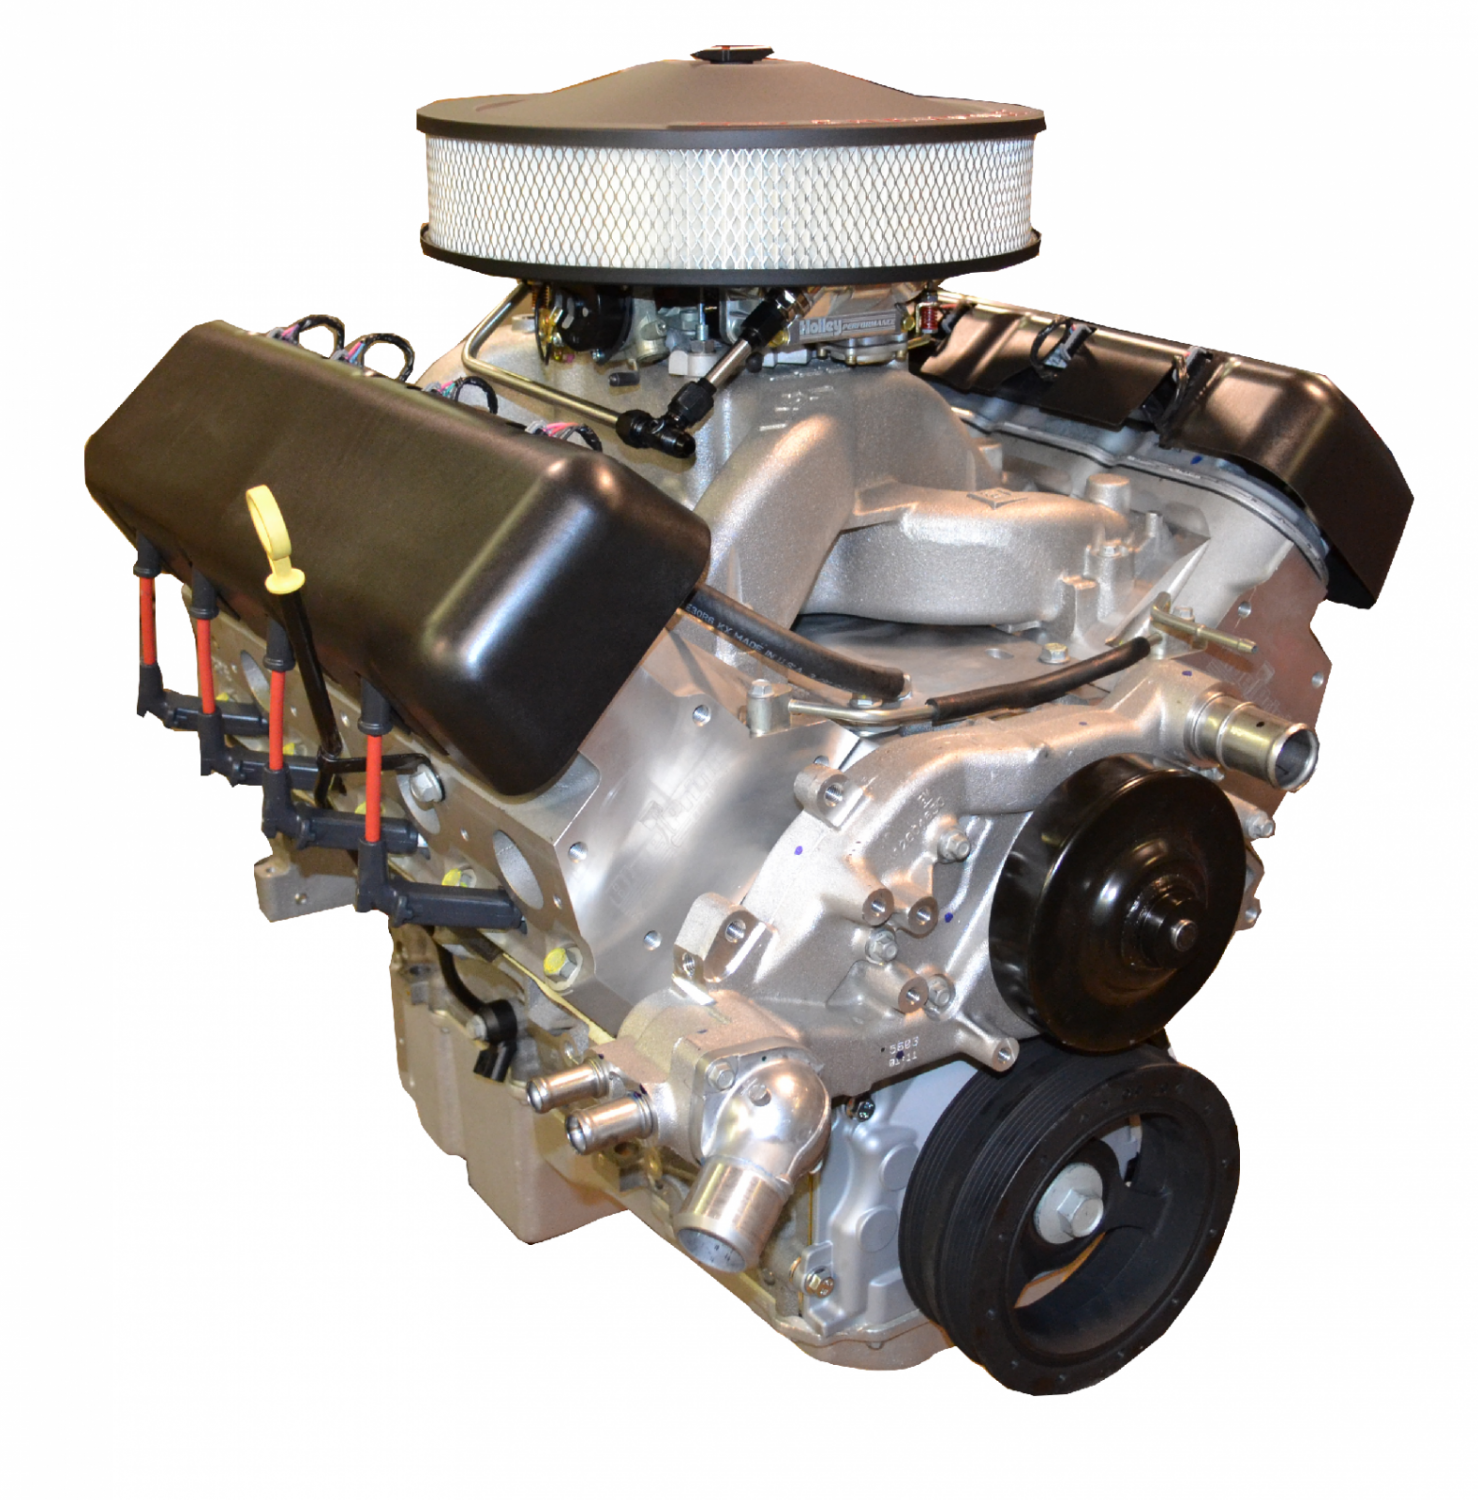 PACE Performance - PSLS4271CT-2X - Pace Performance LS3 427 620HP Turn Key  Carbureted Crate